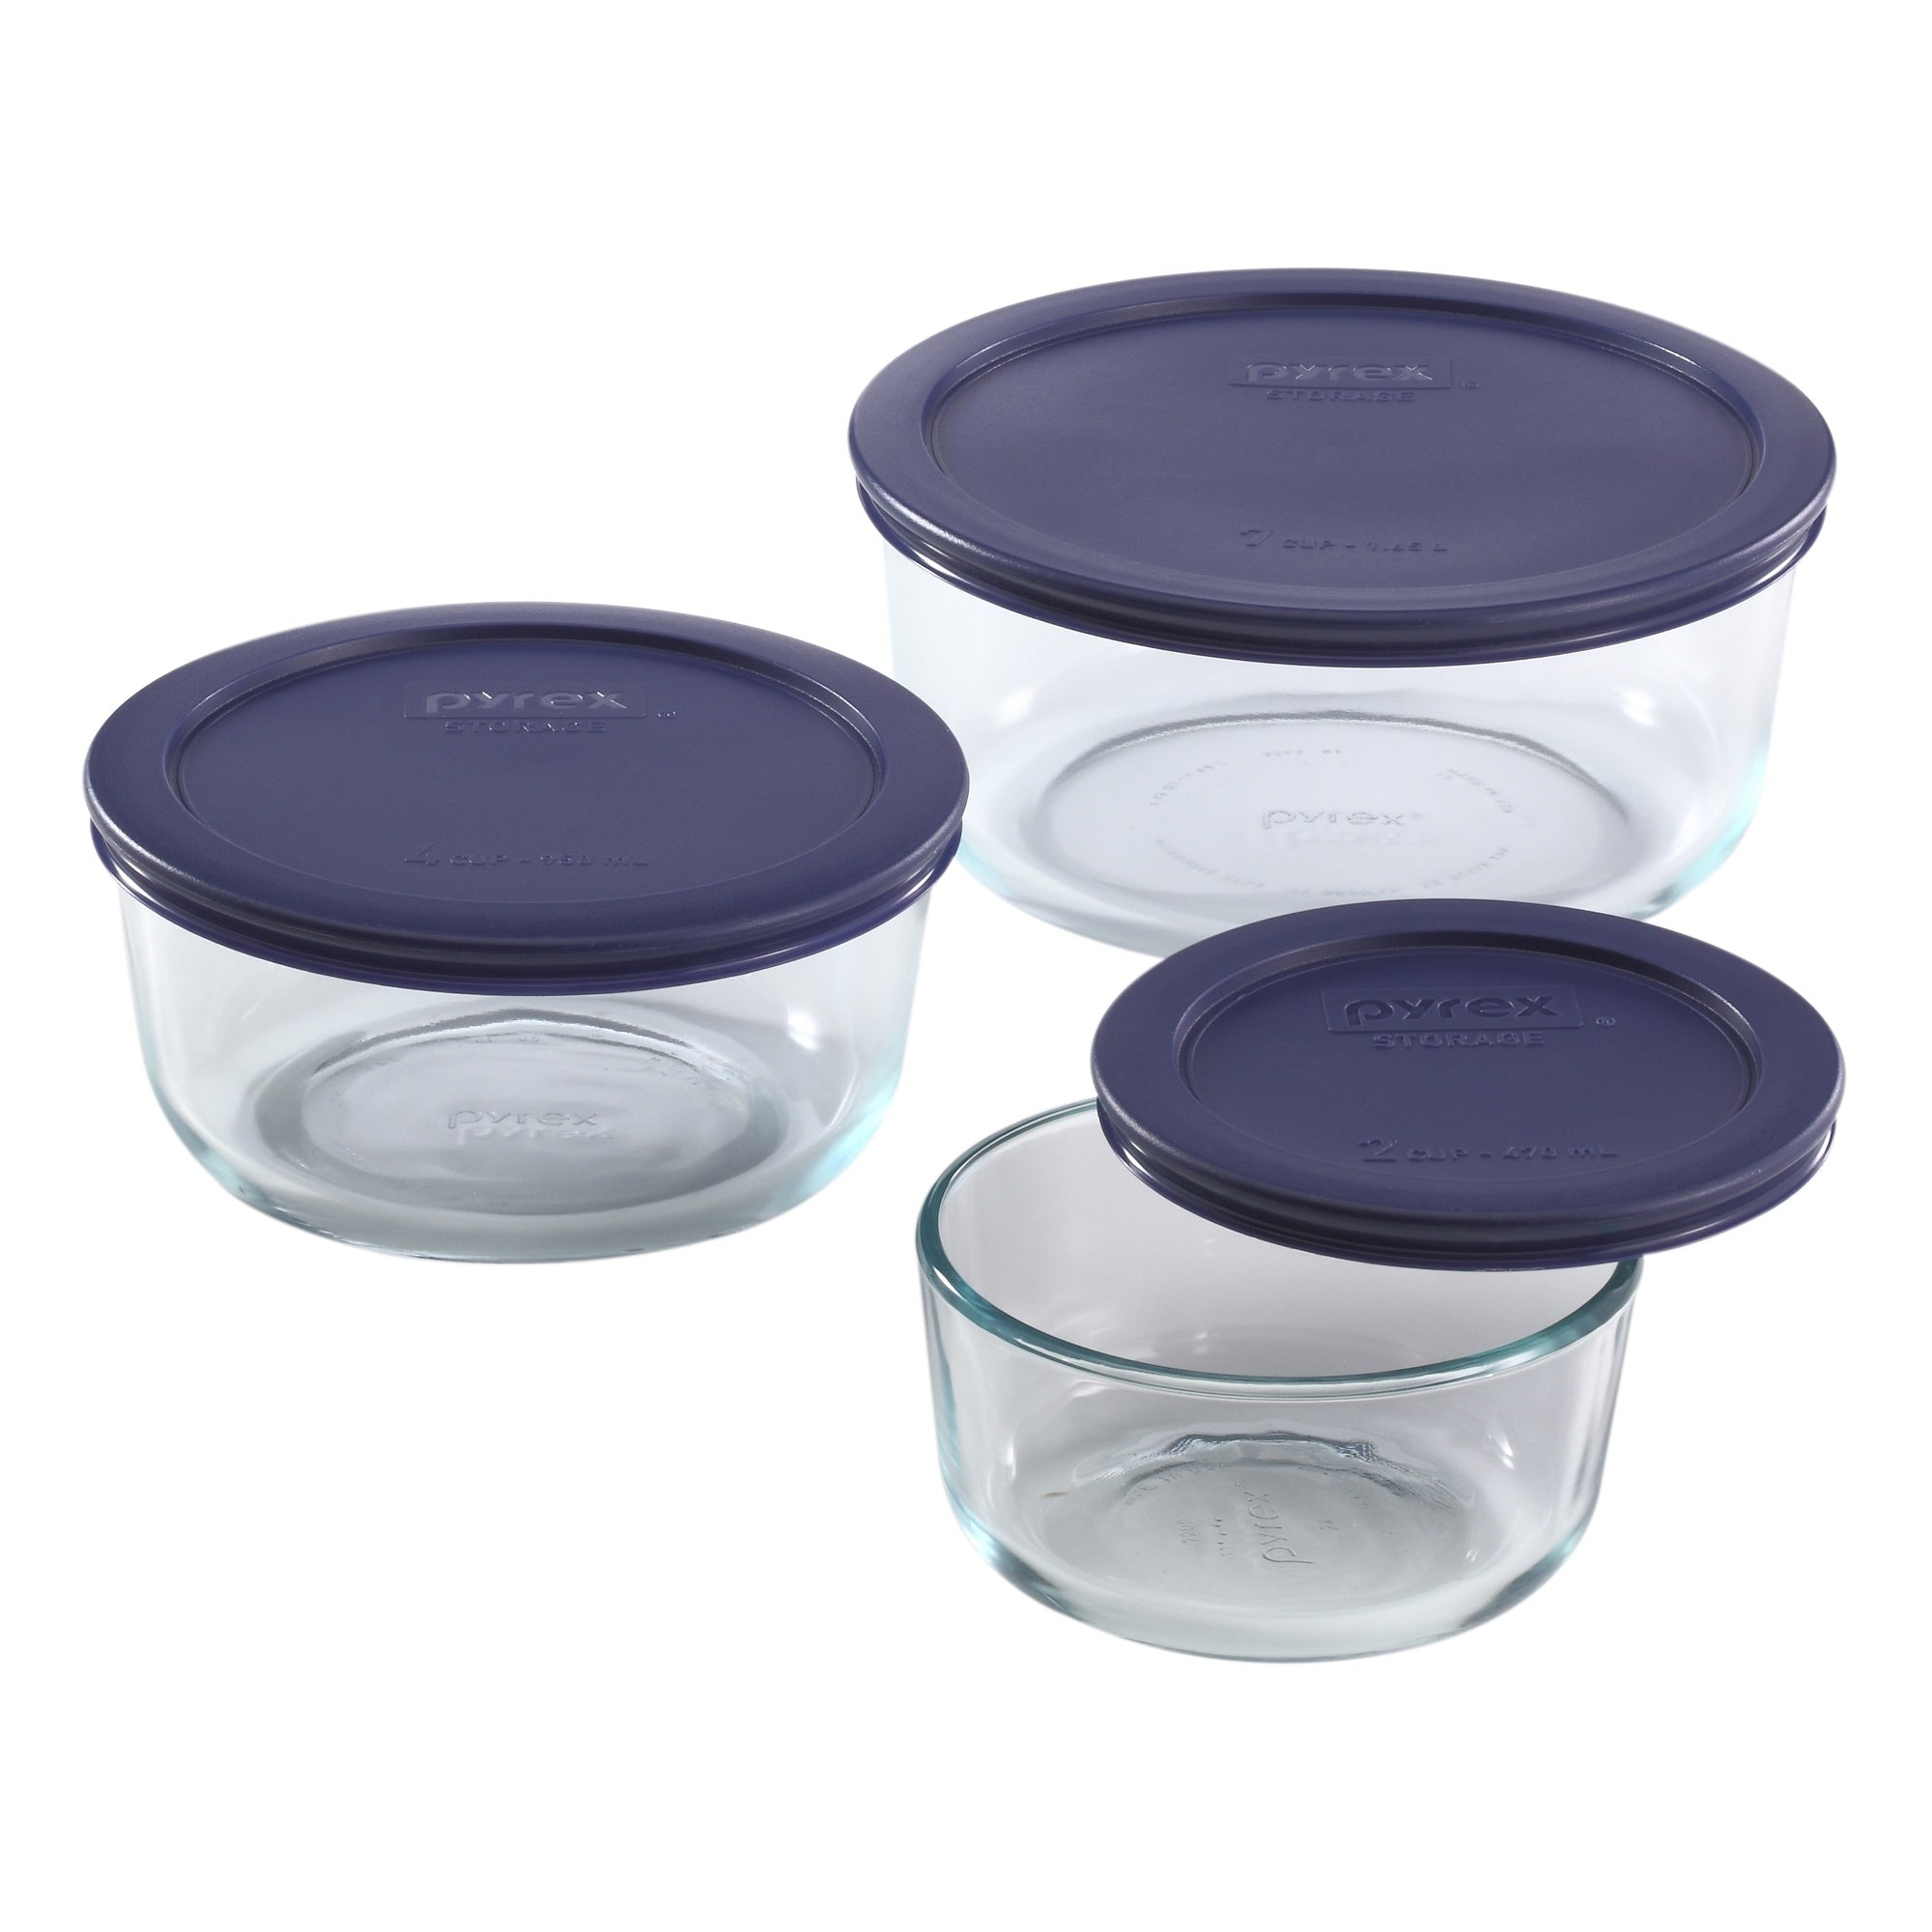 Pyrex SS 6 Piece Round Set with Blue Lids-6010170